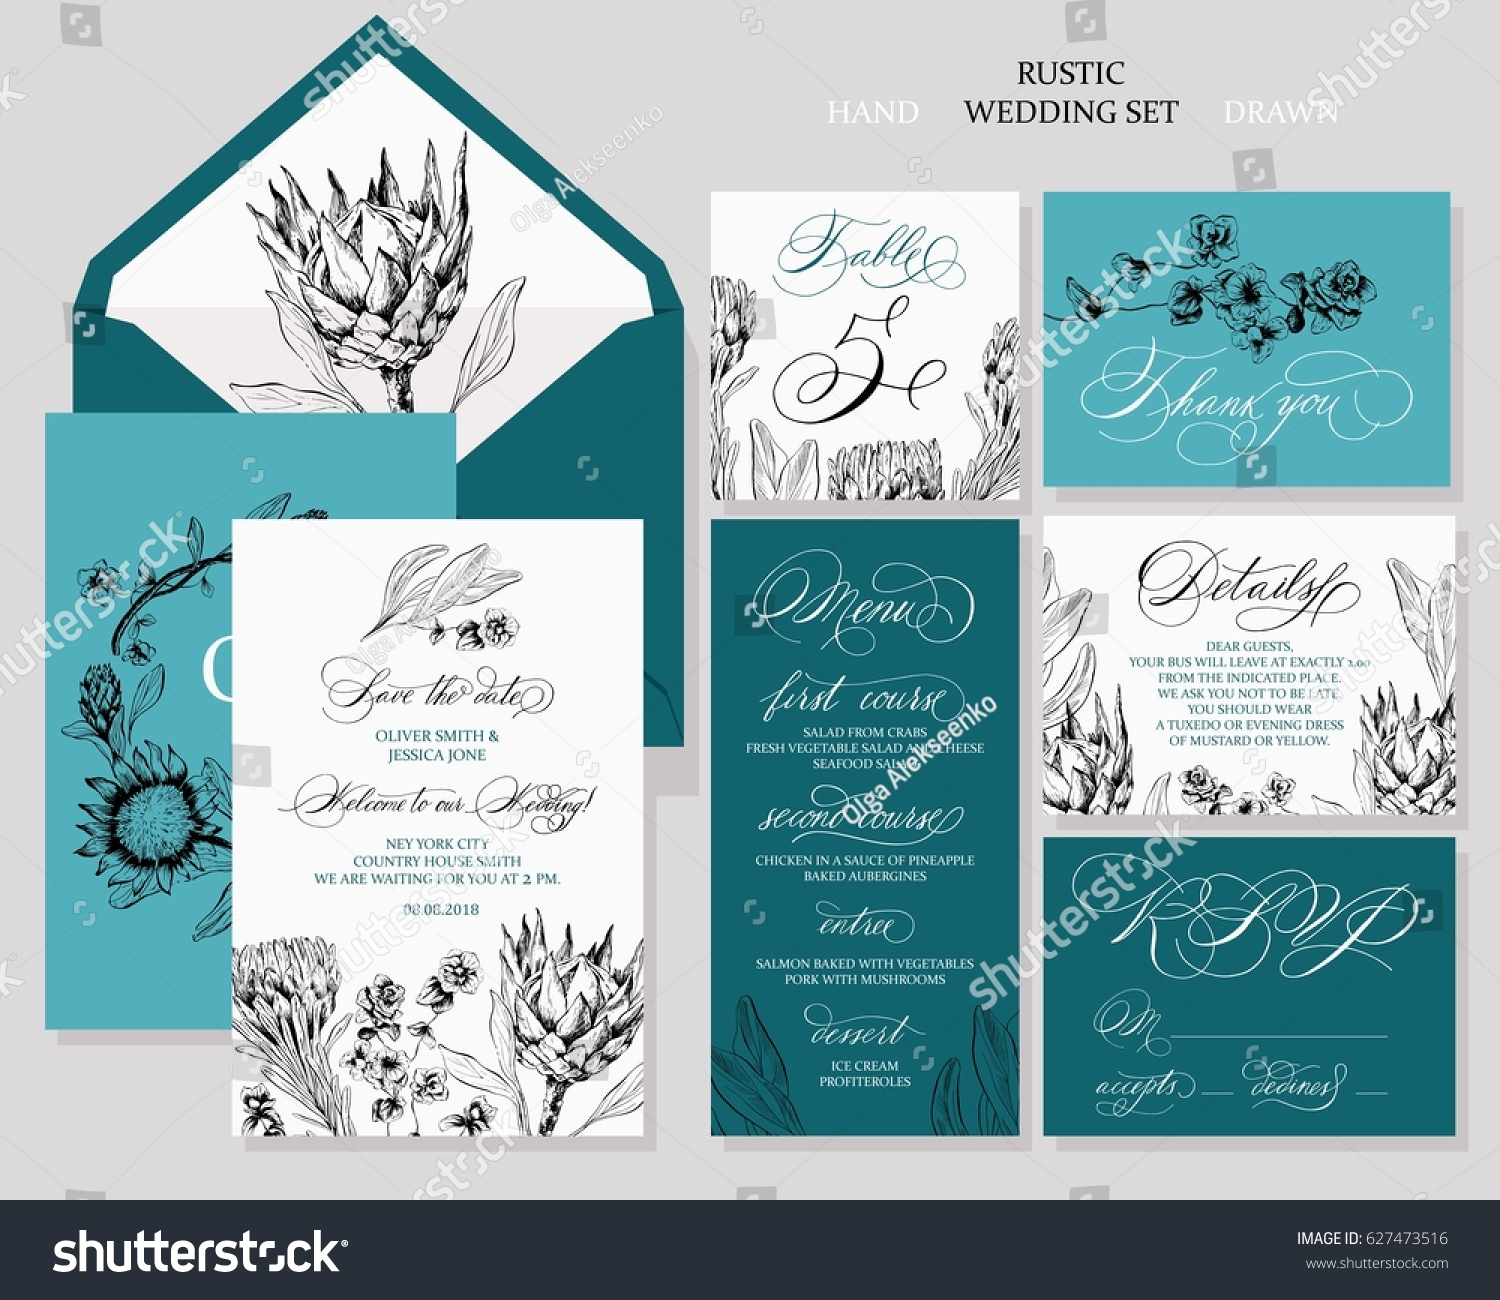 Template Rustic Wedding Invitations Save Date Stock Vector 627473516 ...